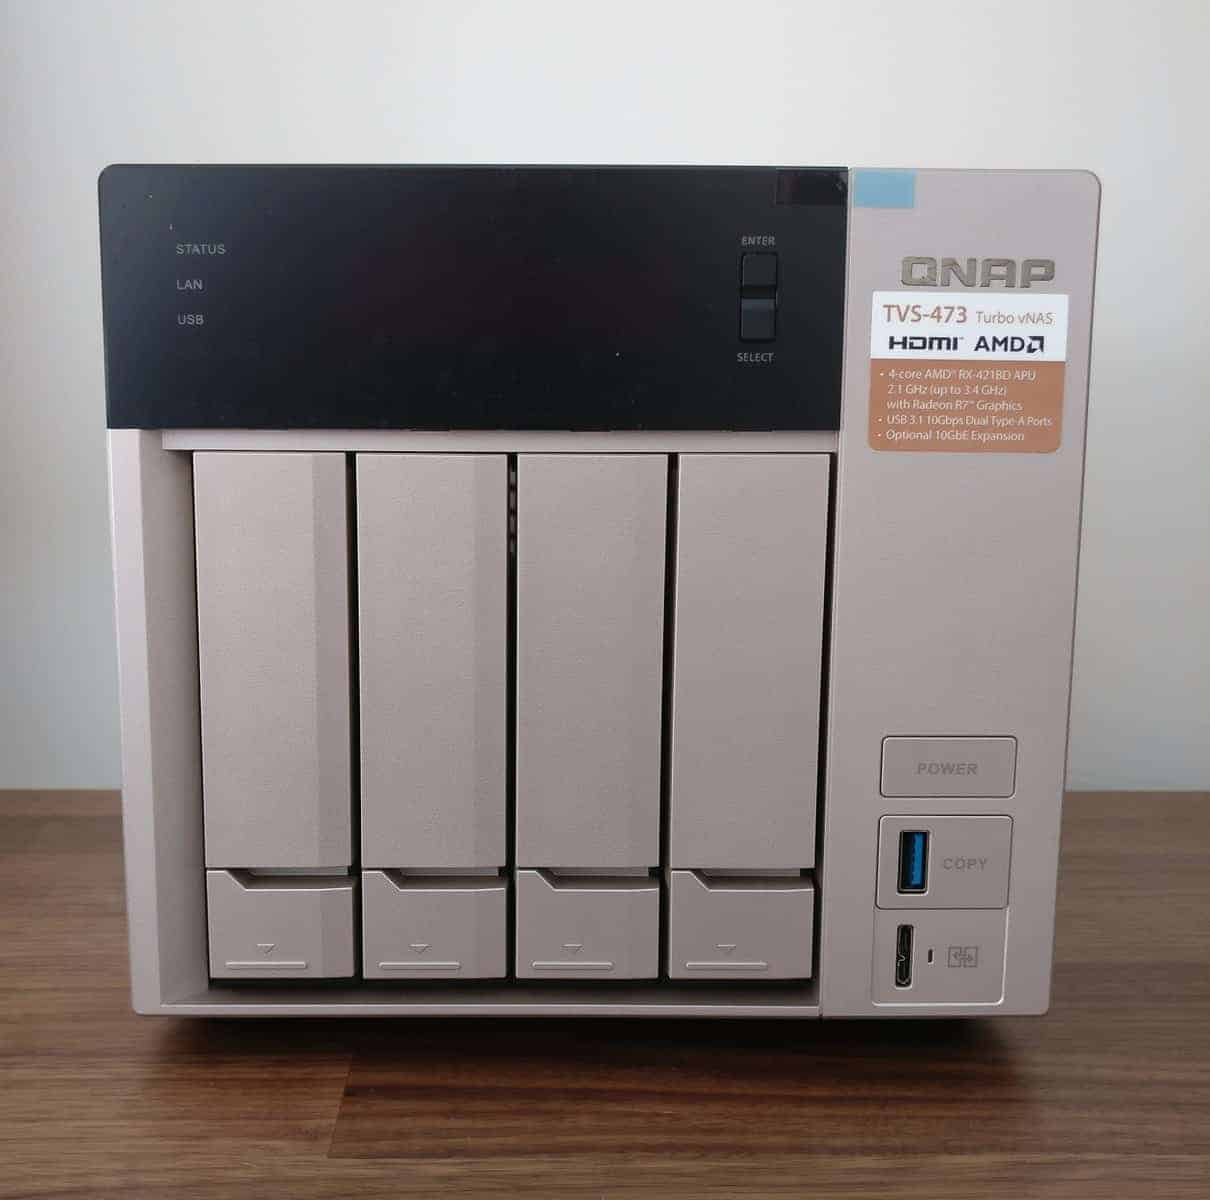 QNAP-TVS-473-Photos-06 QNAP TVS-473 4-Bay NAS Review